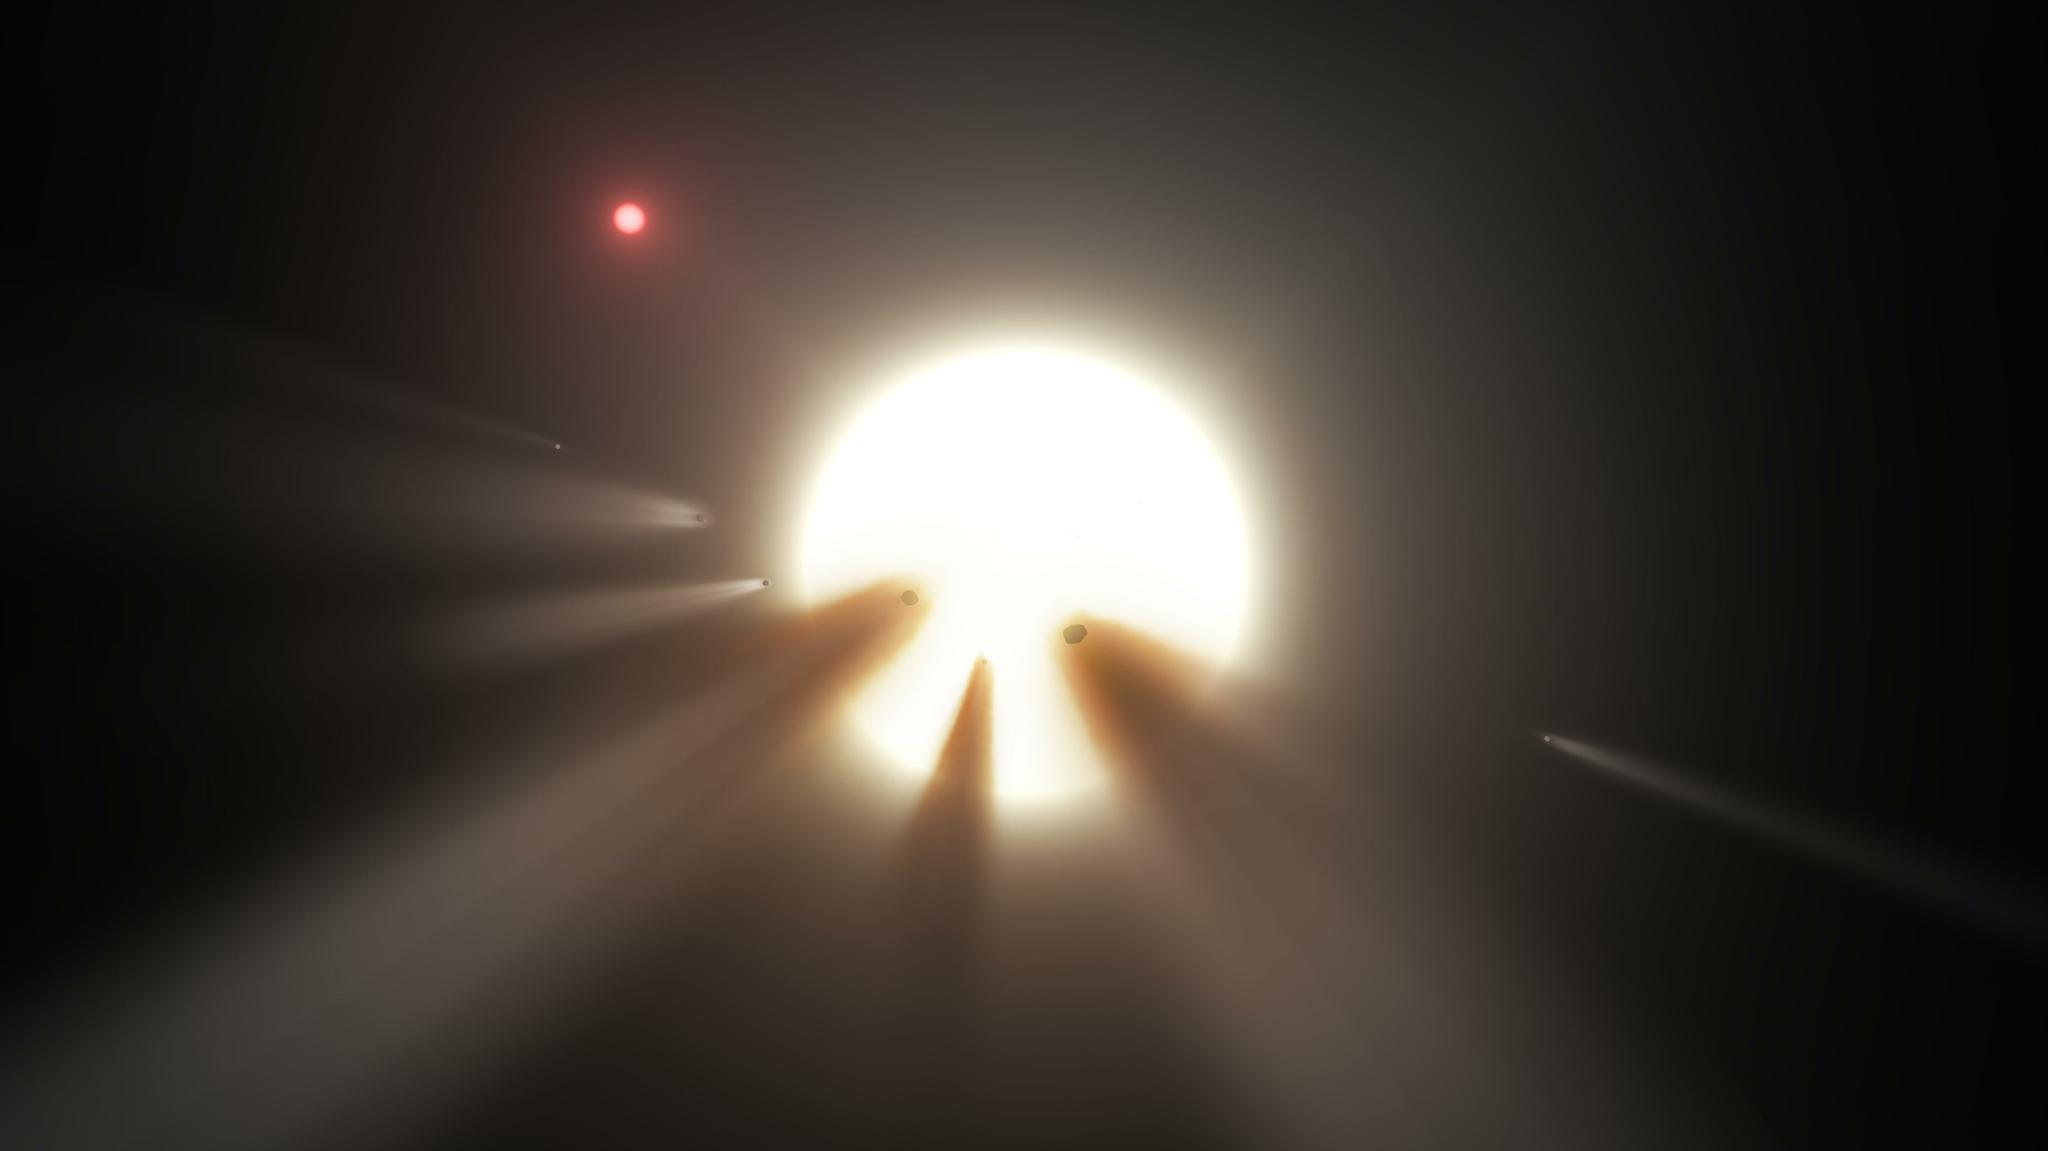 The weird light blips coming from this star might be caused by a family of comets or collision debris, but scientists don't really know.